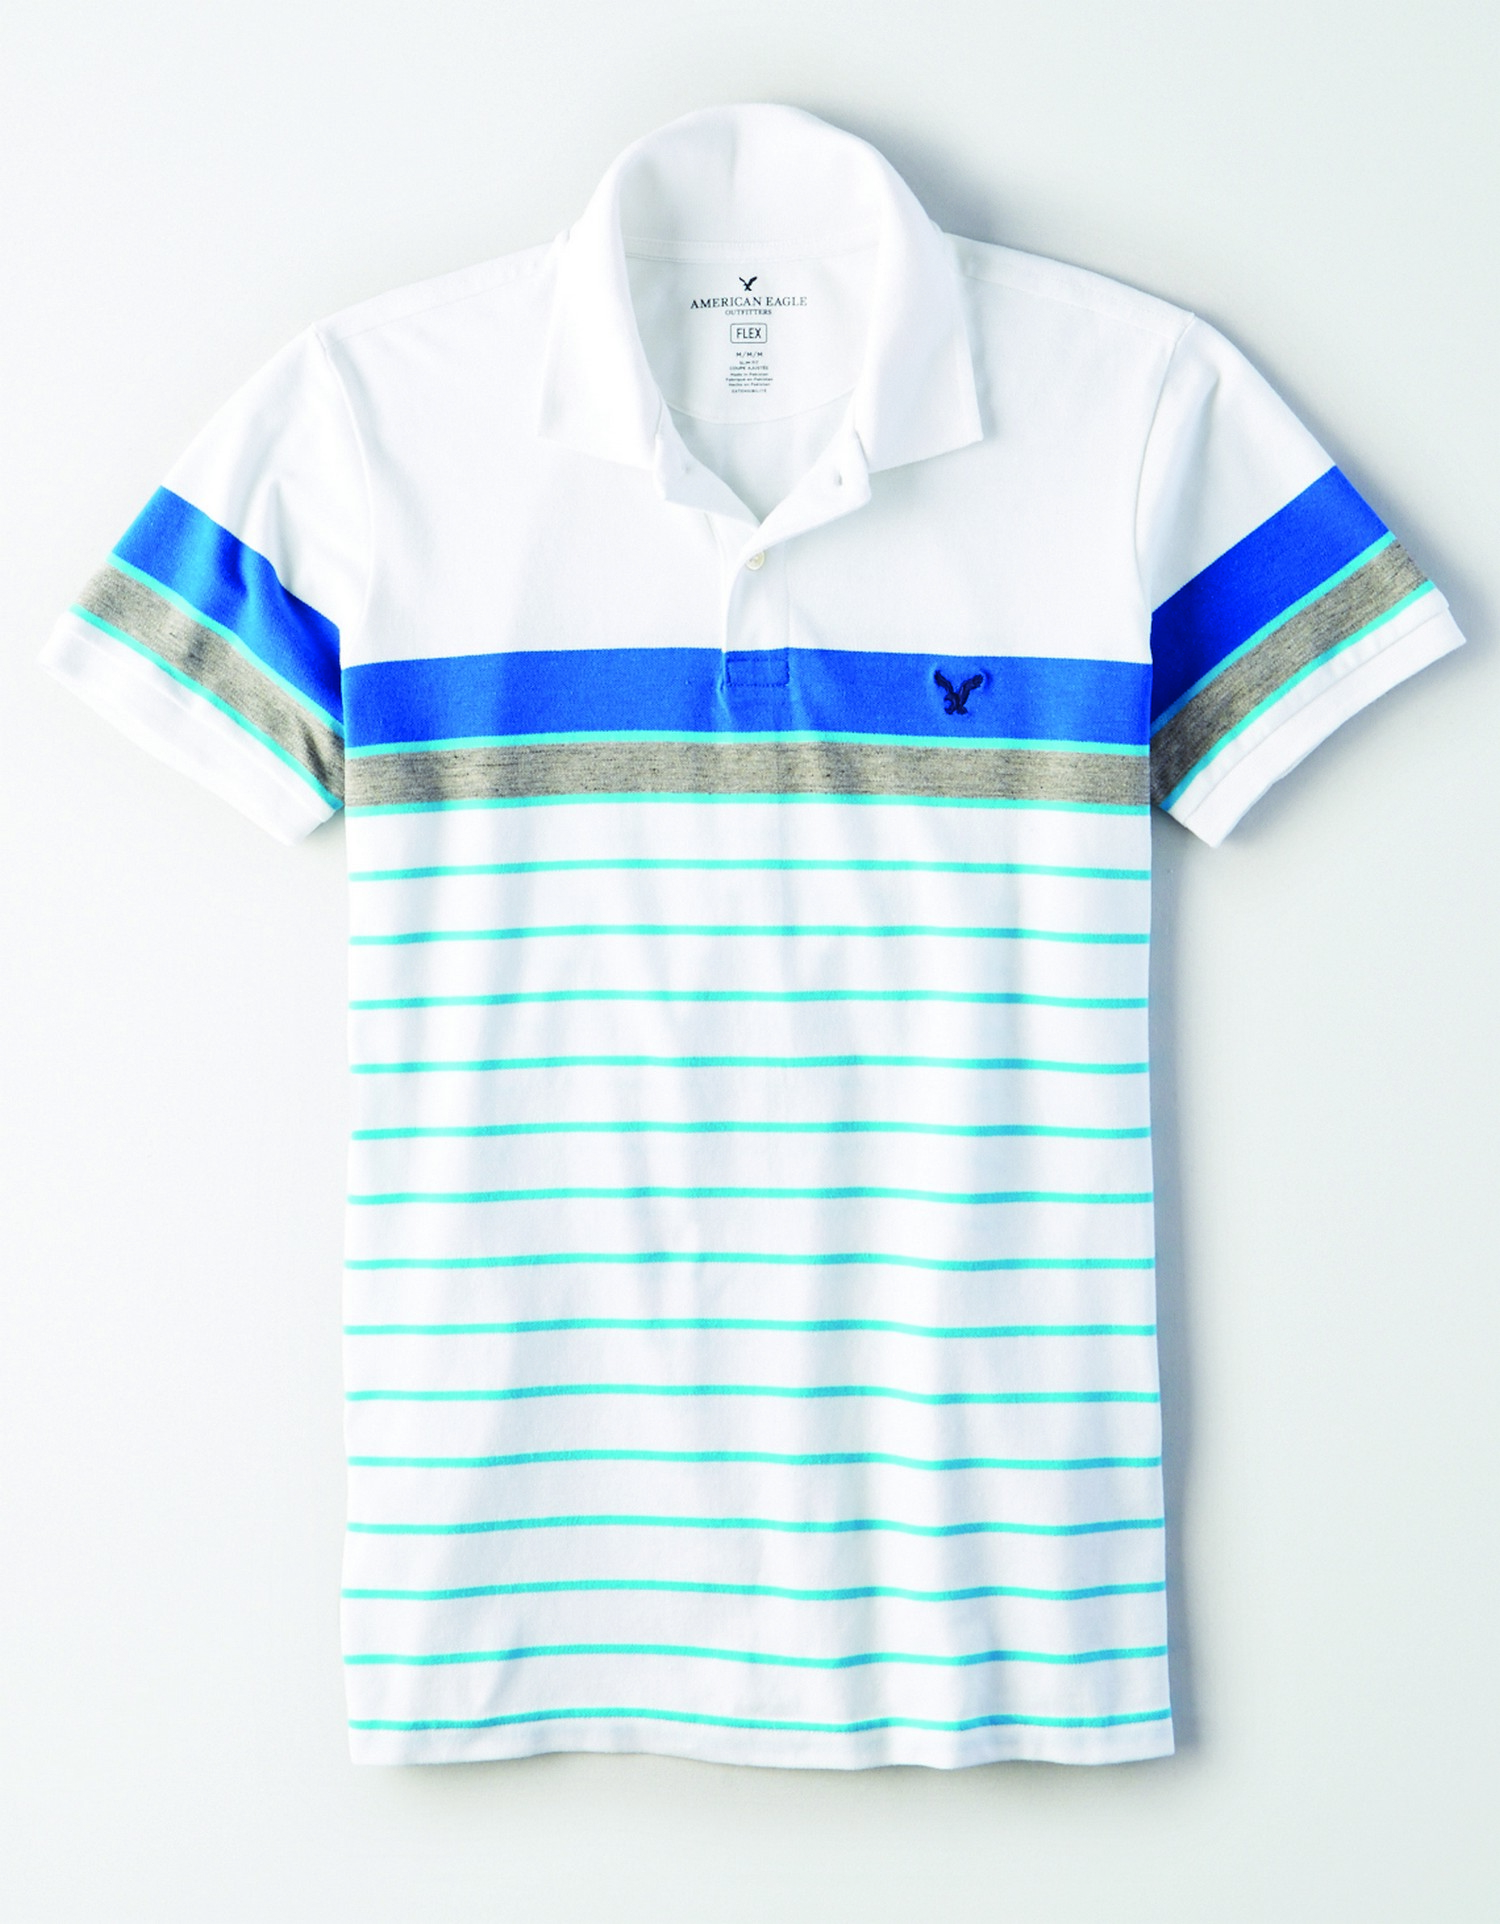 AE - INTL - Apparel - M - Slim Stripe Polo - White - Cobalt Blue and heather grey chest stripe - thine horizontal turquoise stripes KS *Tracked